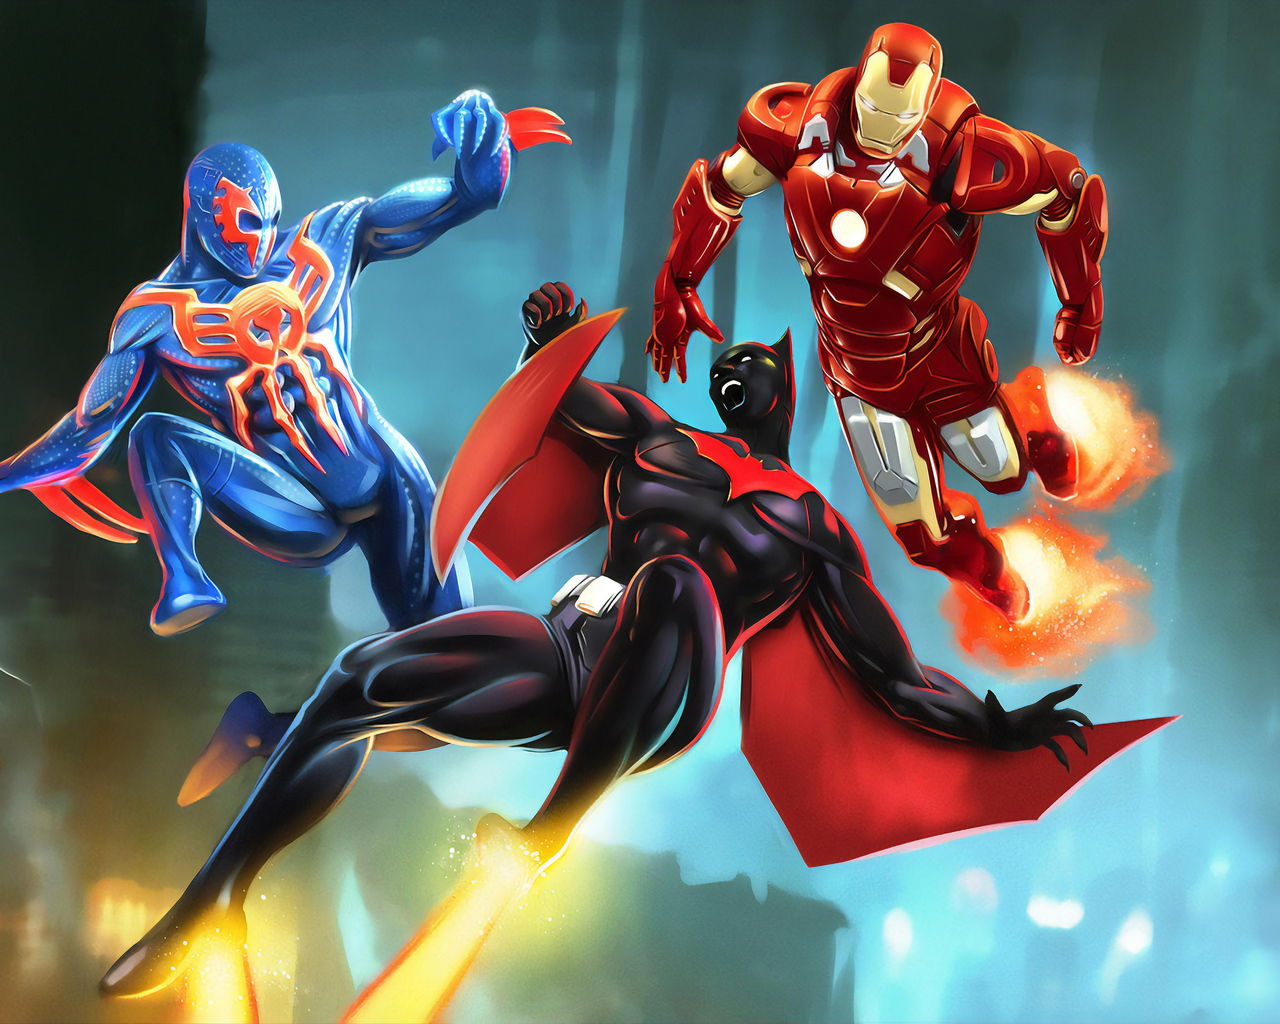 batman-beyond-spiderman-2099-ironman-3v.jpg